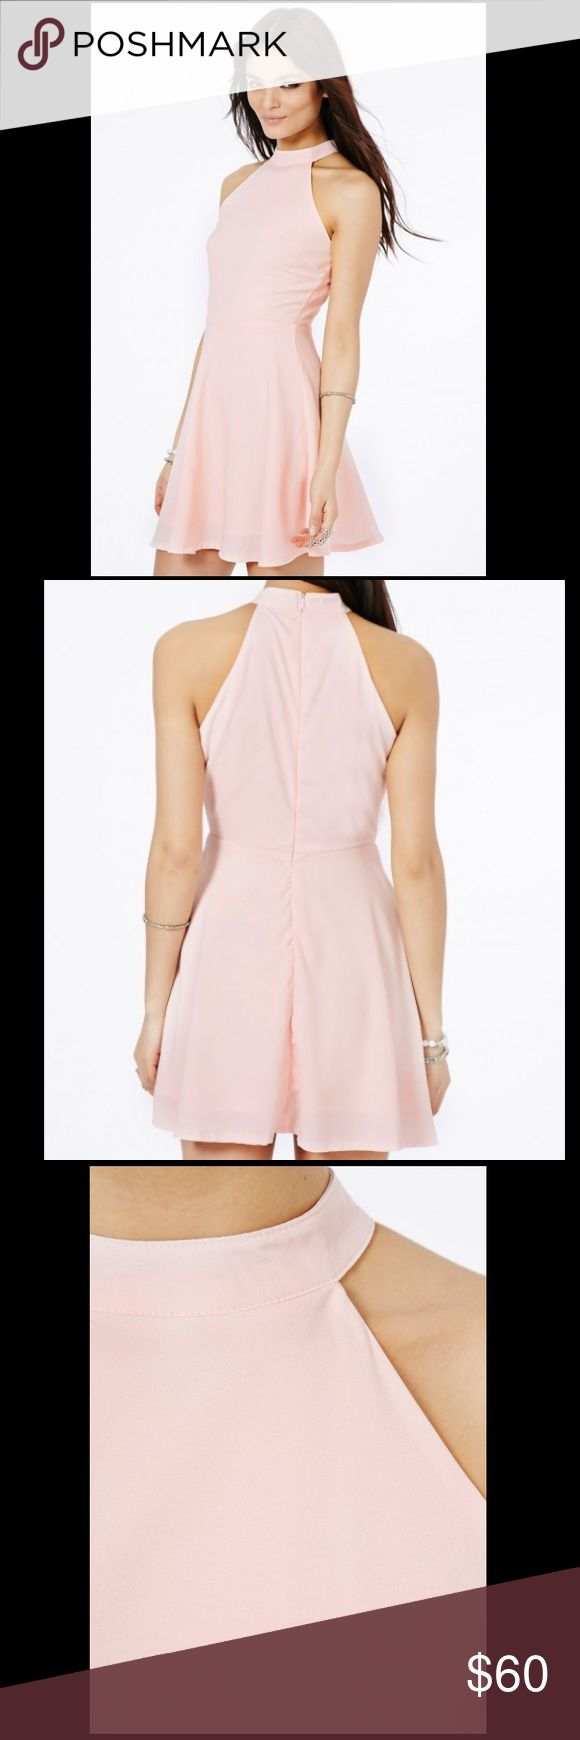 NWT CUTE Pink Missguided Dress💗 Super cute blush pink Missguided dress, new with tags! Perfect for Spring and Summer weddings, parties and barbecues. The dress is in mint condition. It is the pink color from the first few photos, but the same style as the purple dress photos. Missguided Dresses